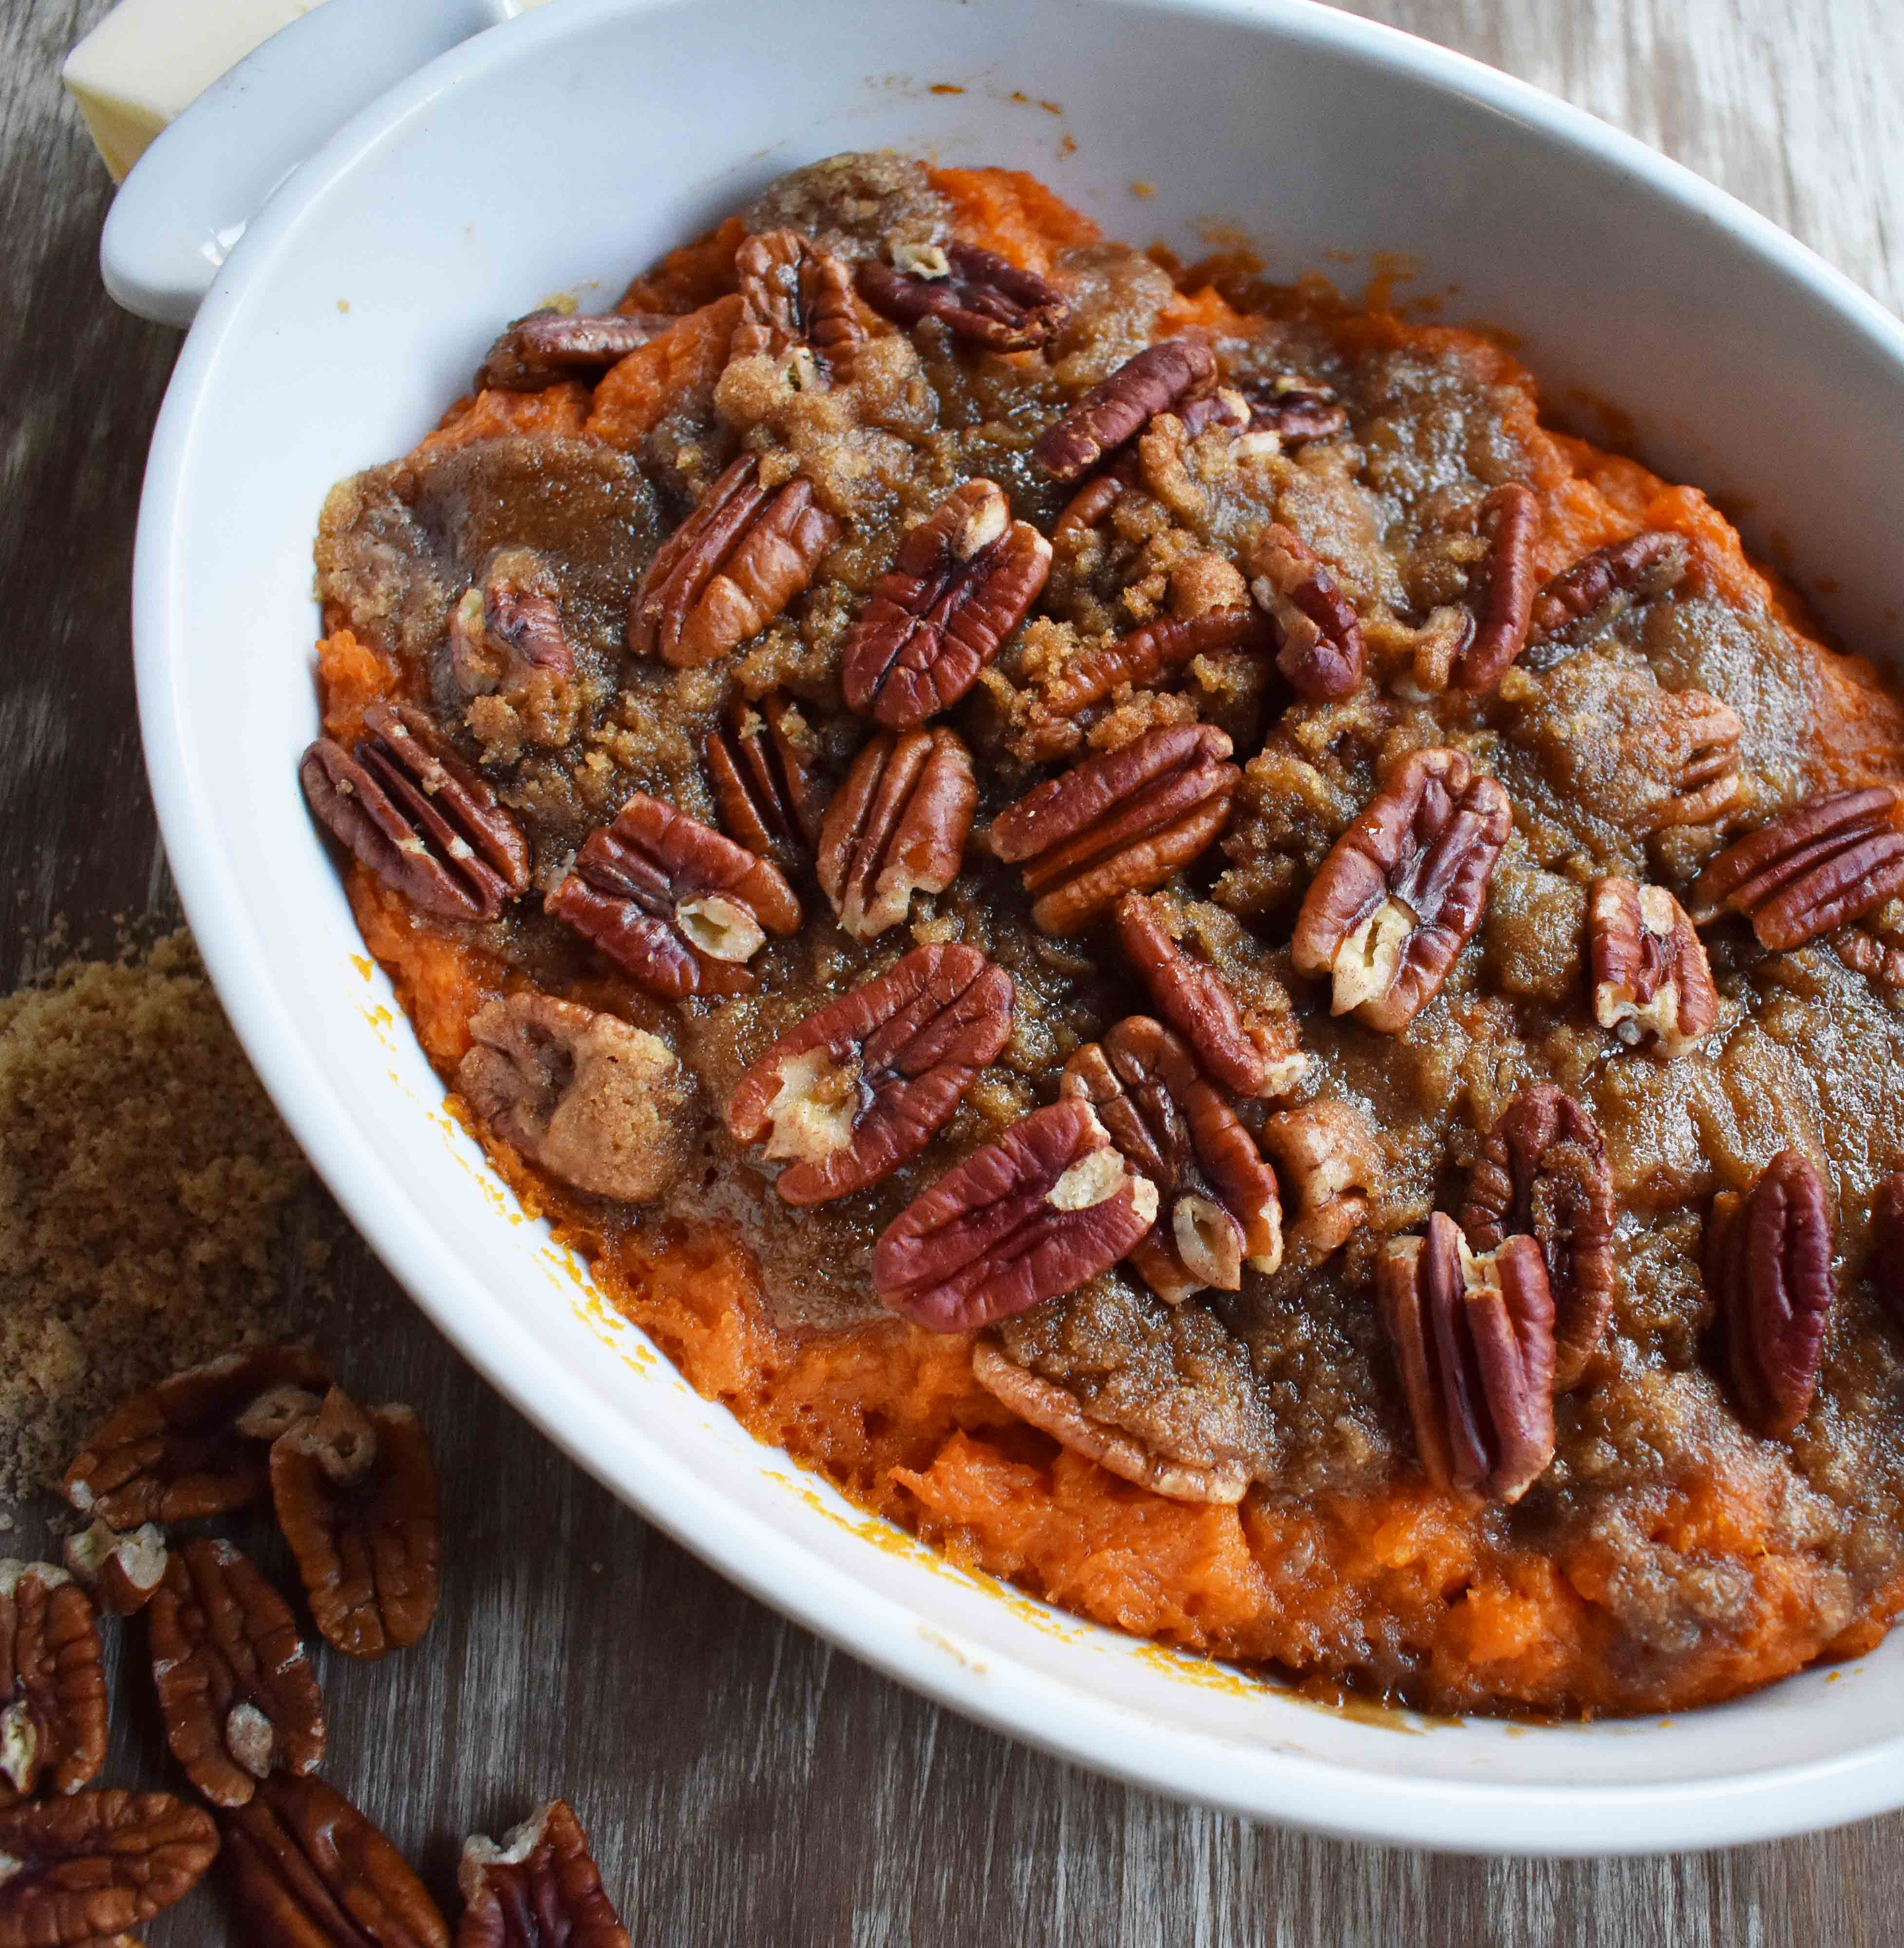 Sweet Potato Brown Sugar Pecan Bake by Modern Honey. Vanilla Cinnamon Sweet Potato sprinkled with Brown Sugar Pecan Topping. It's the perfect side dish.